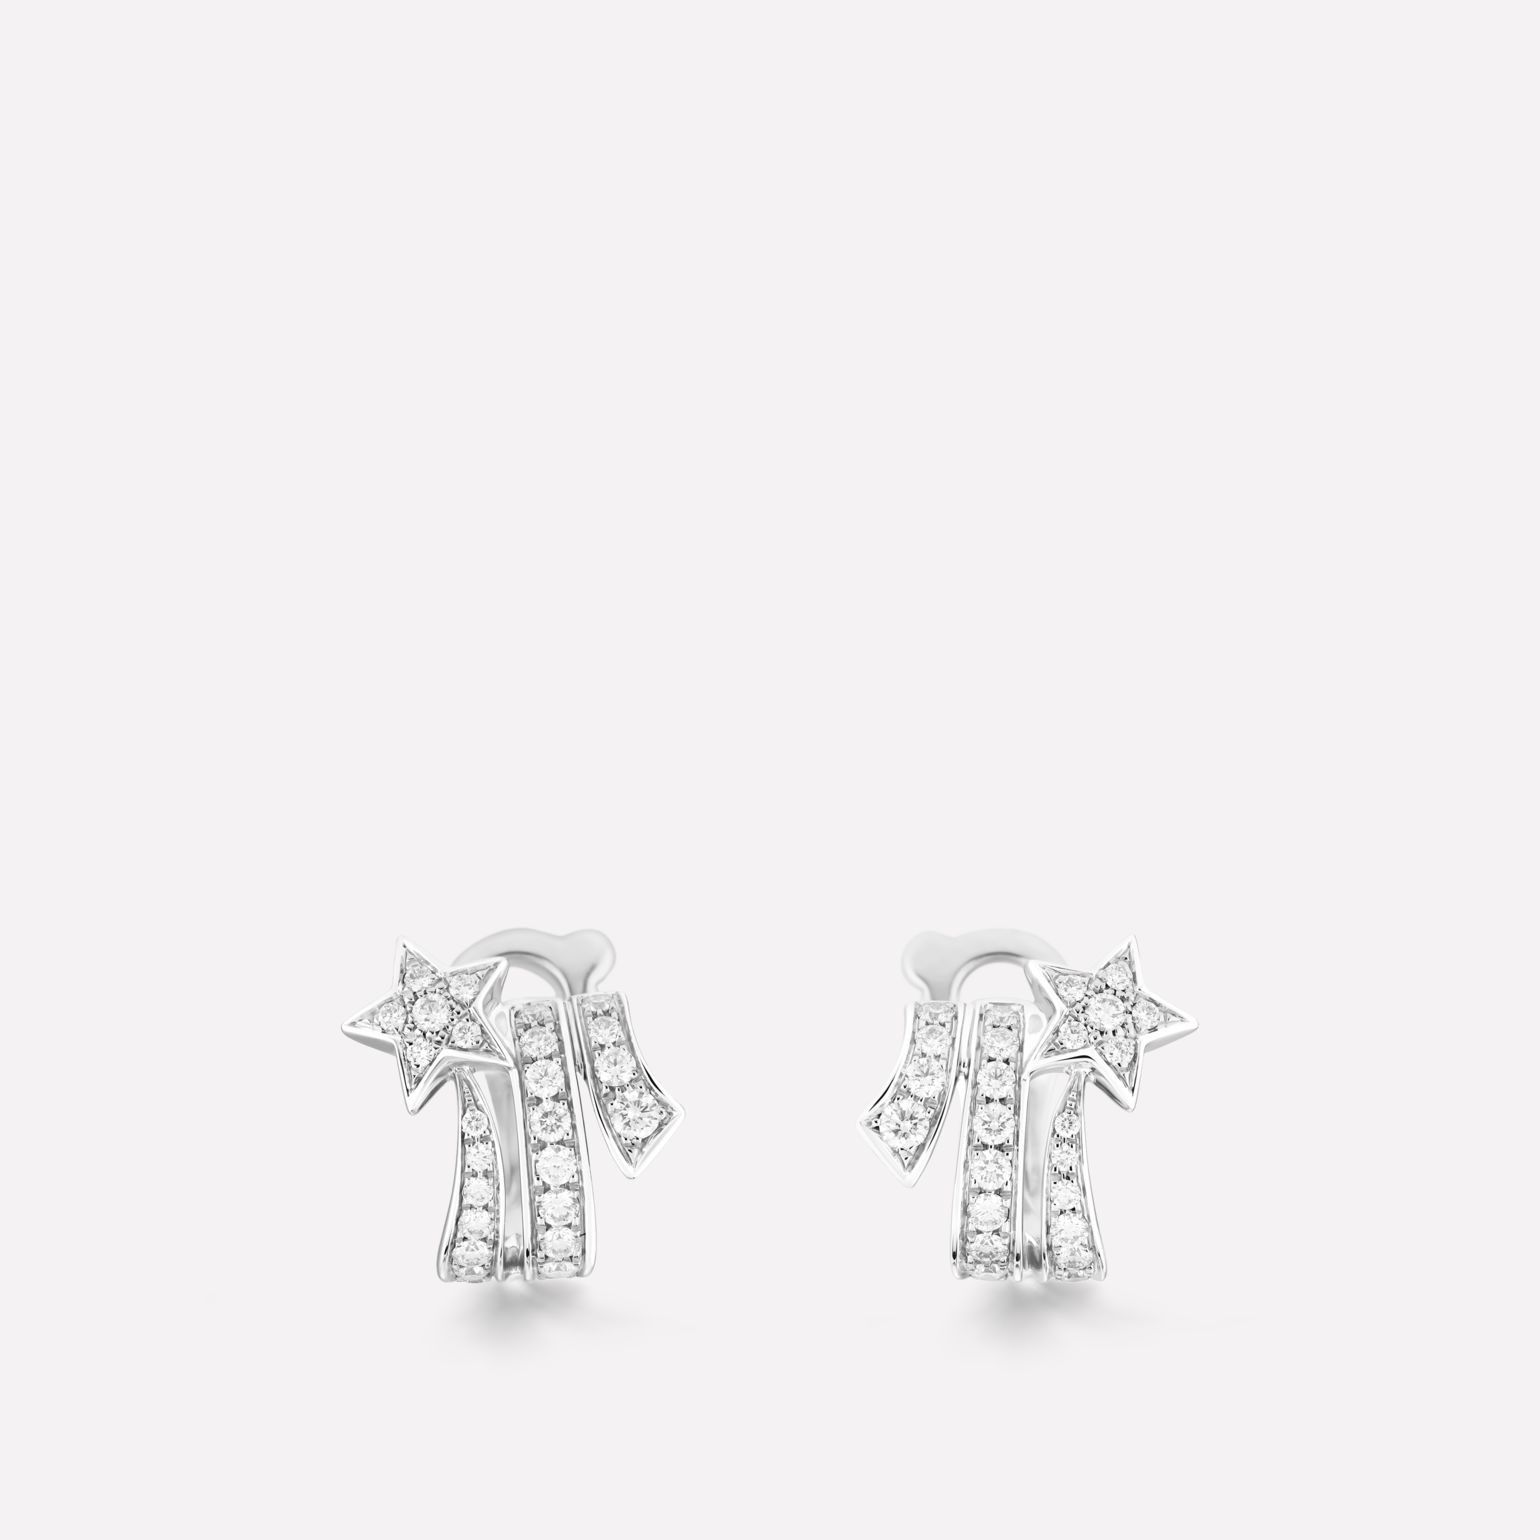 Comète earrings Shooting star earrings in 18K white gold and diamonds